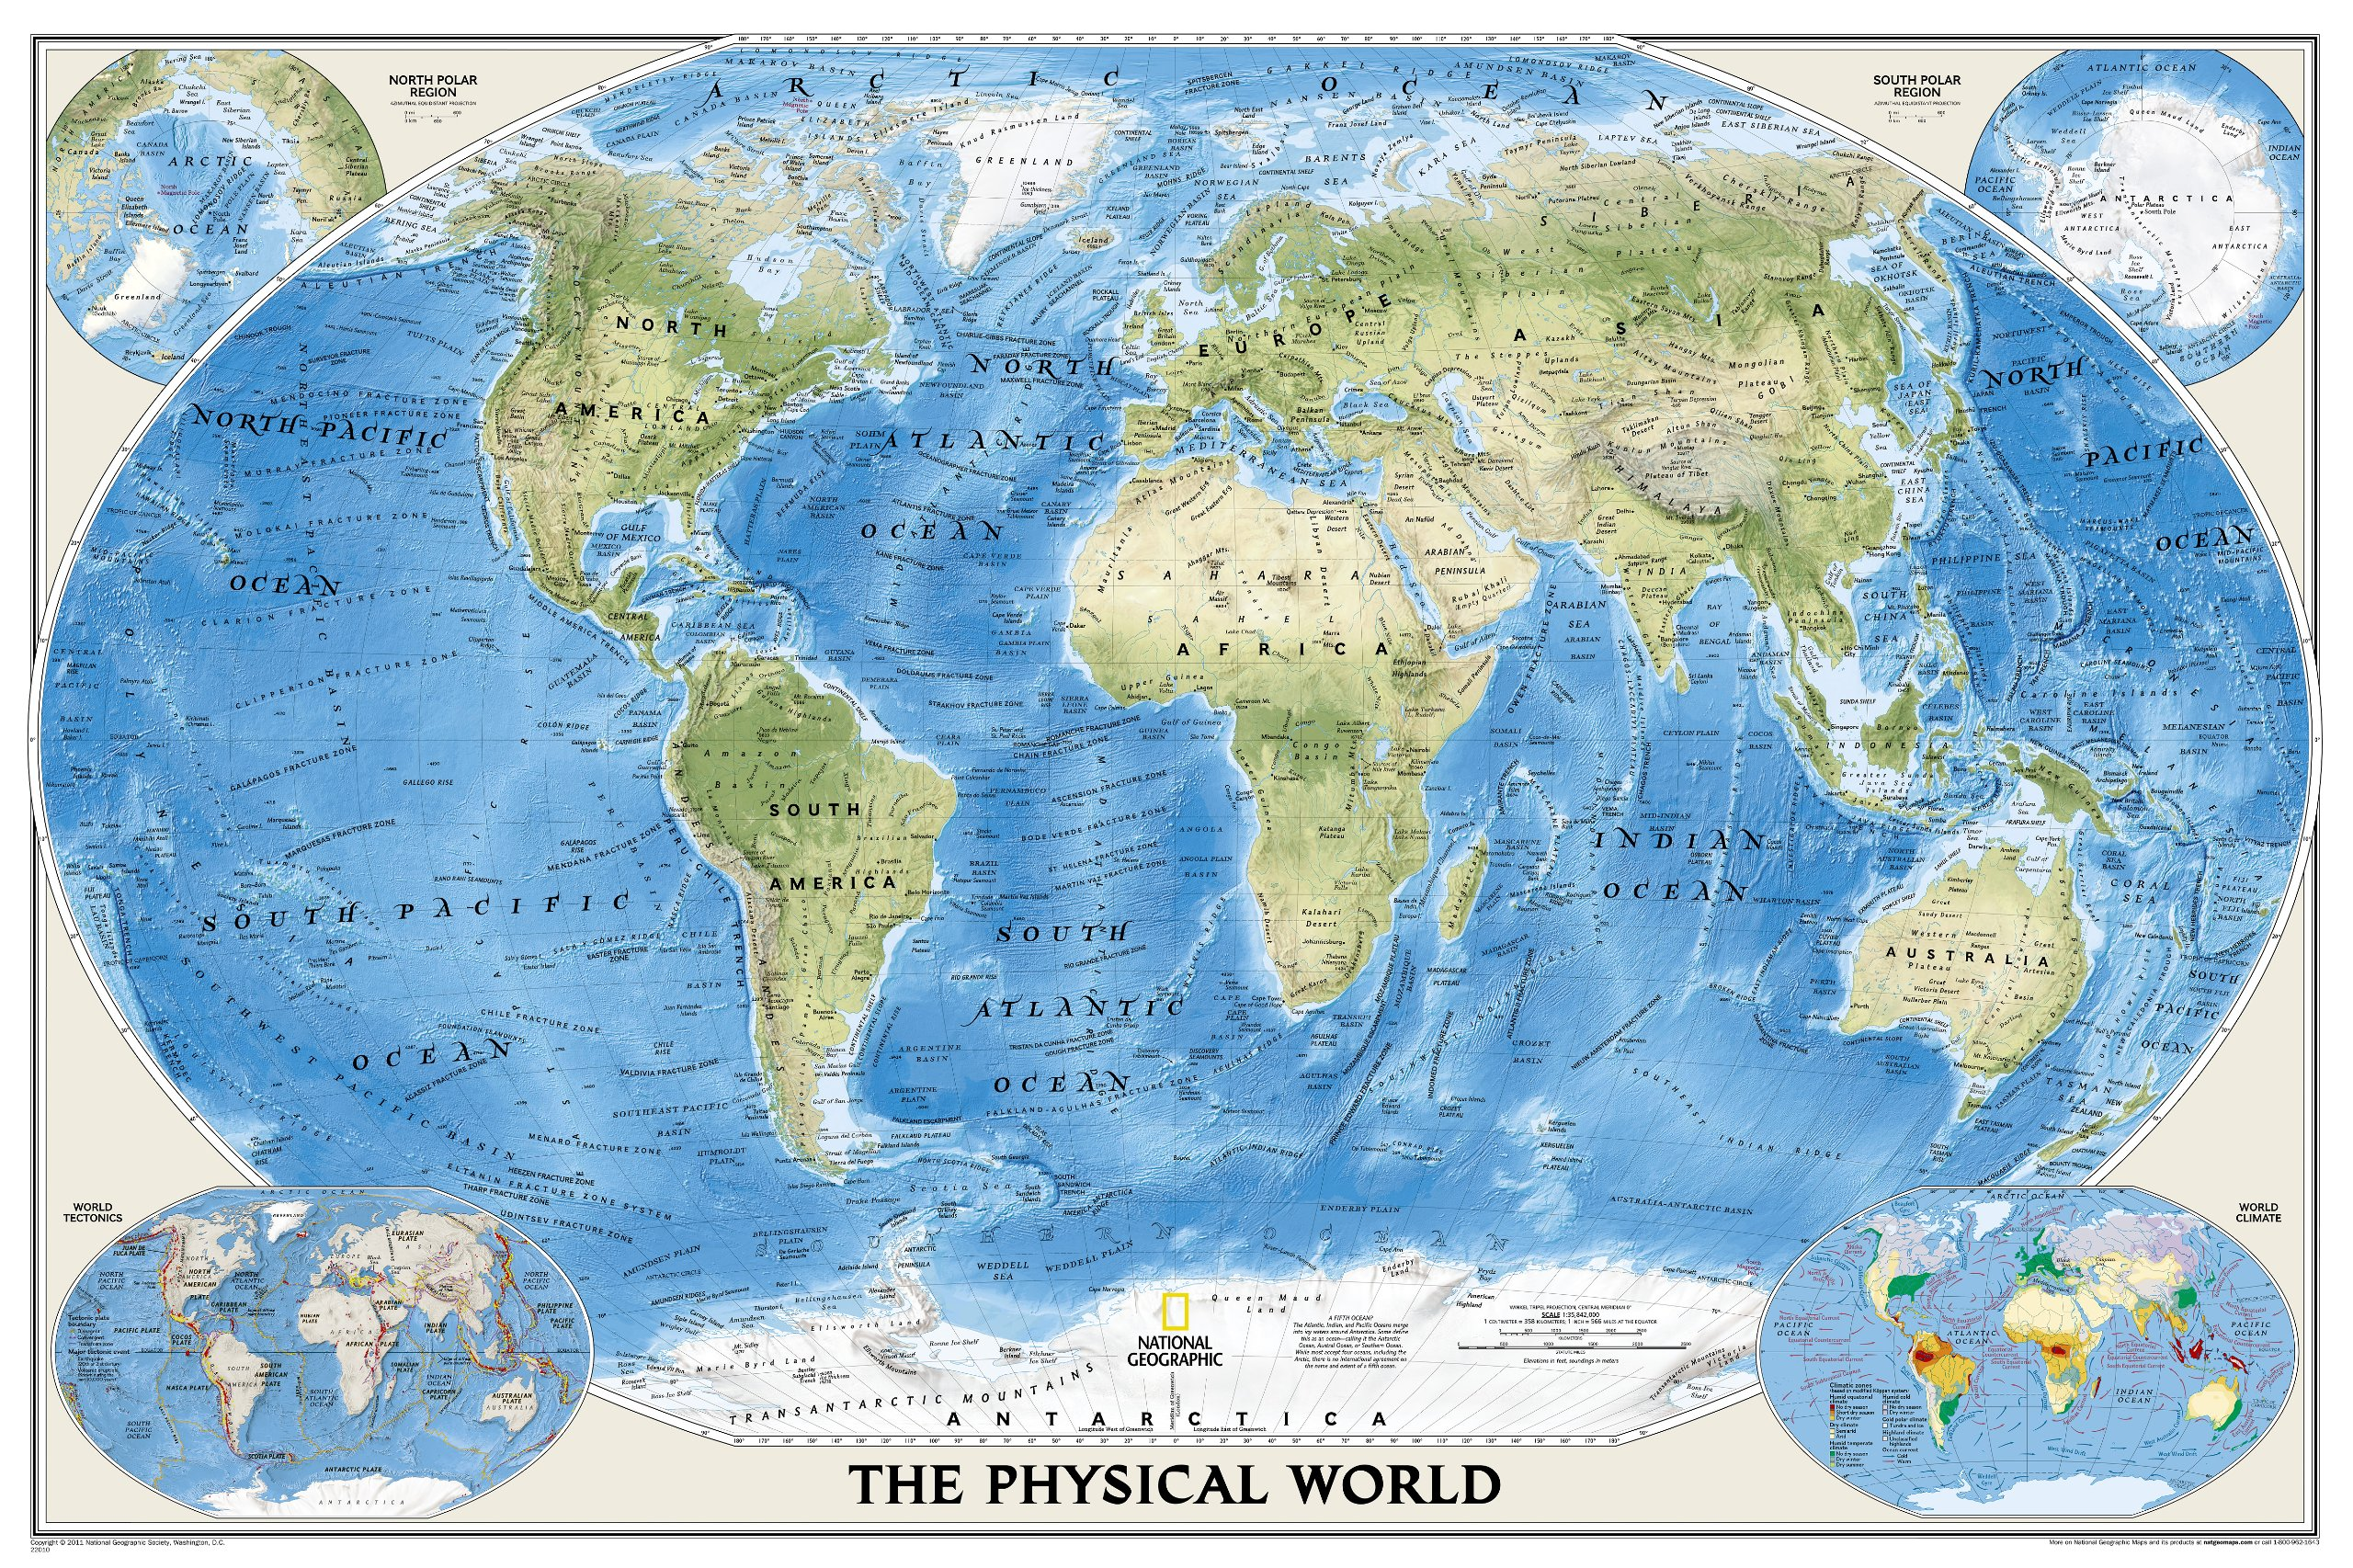 National Geographic Mapa Fizyczna Maps Pinterest - World physical map labeled